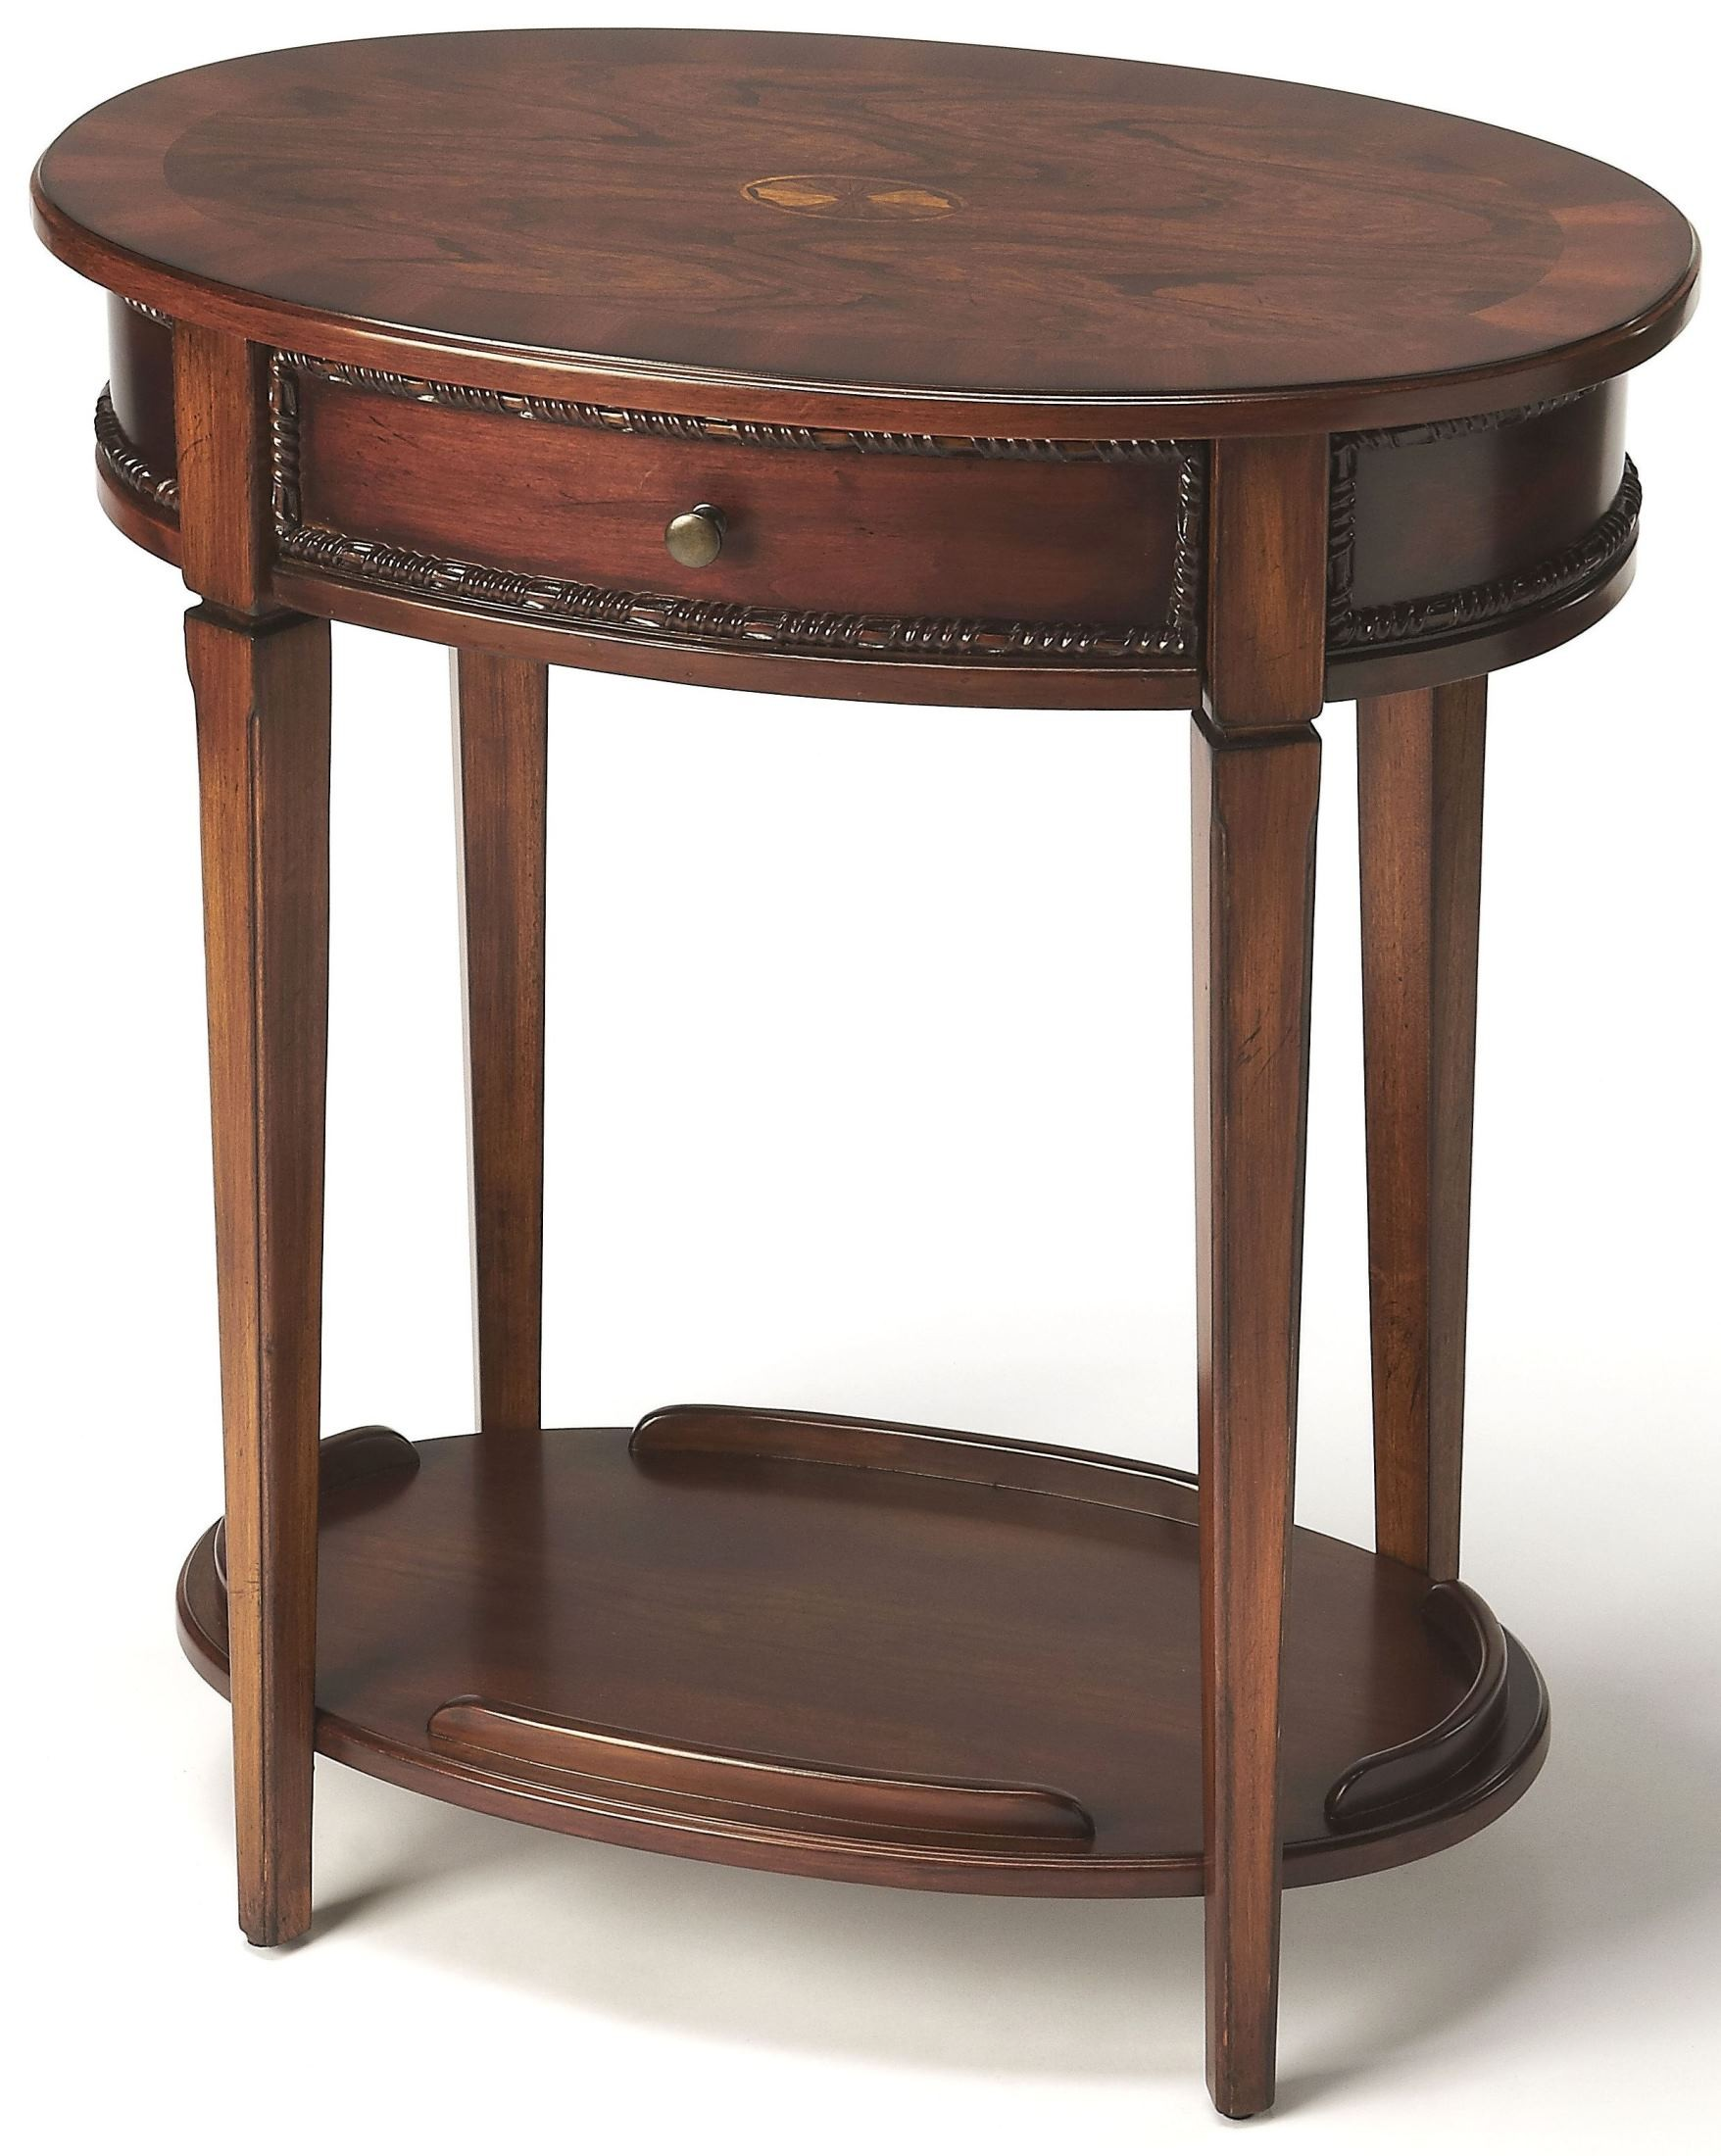 Adelaide antique cherry oval side table  butler